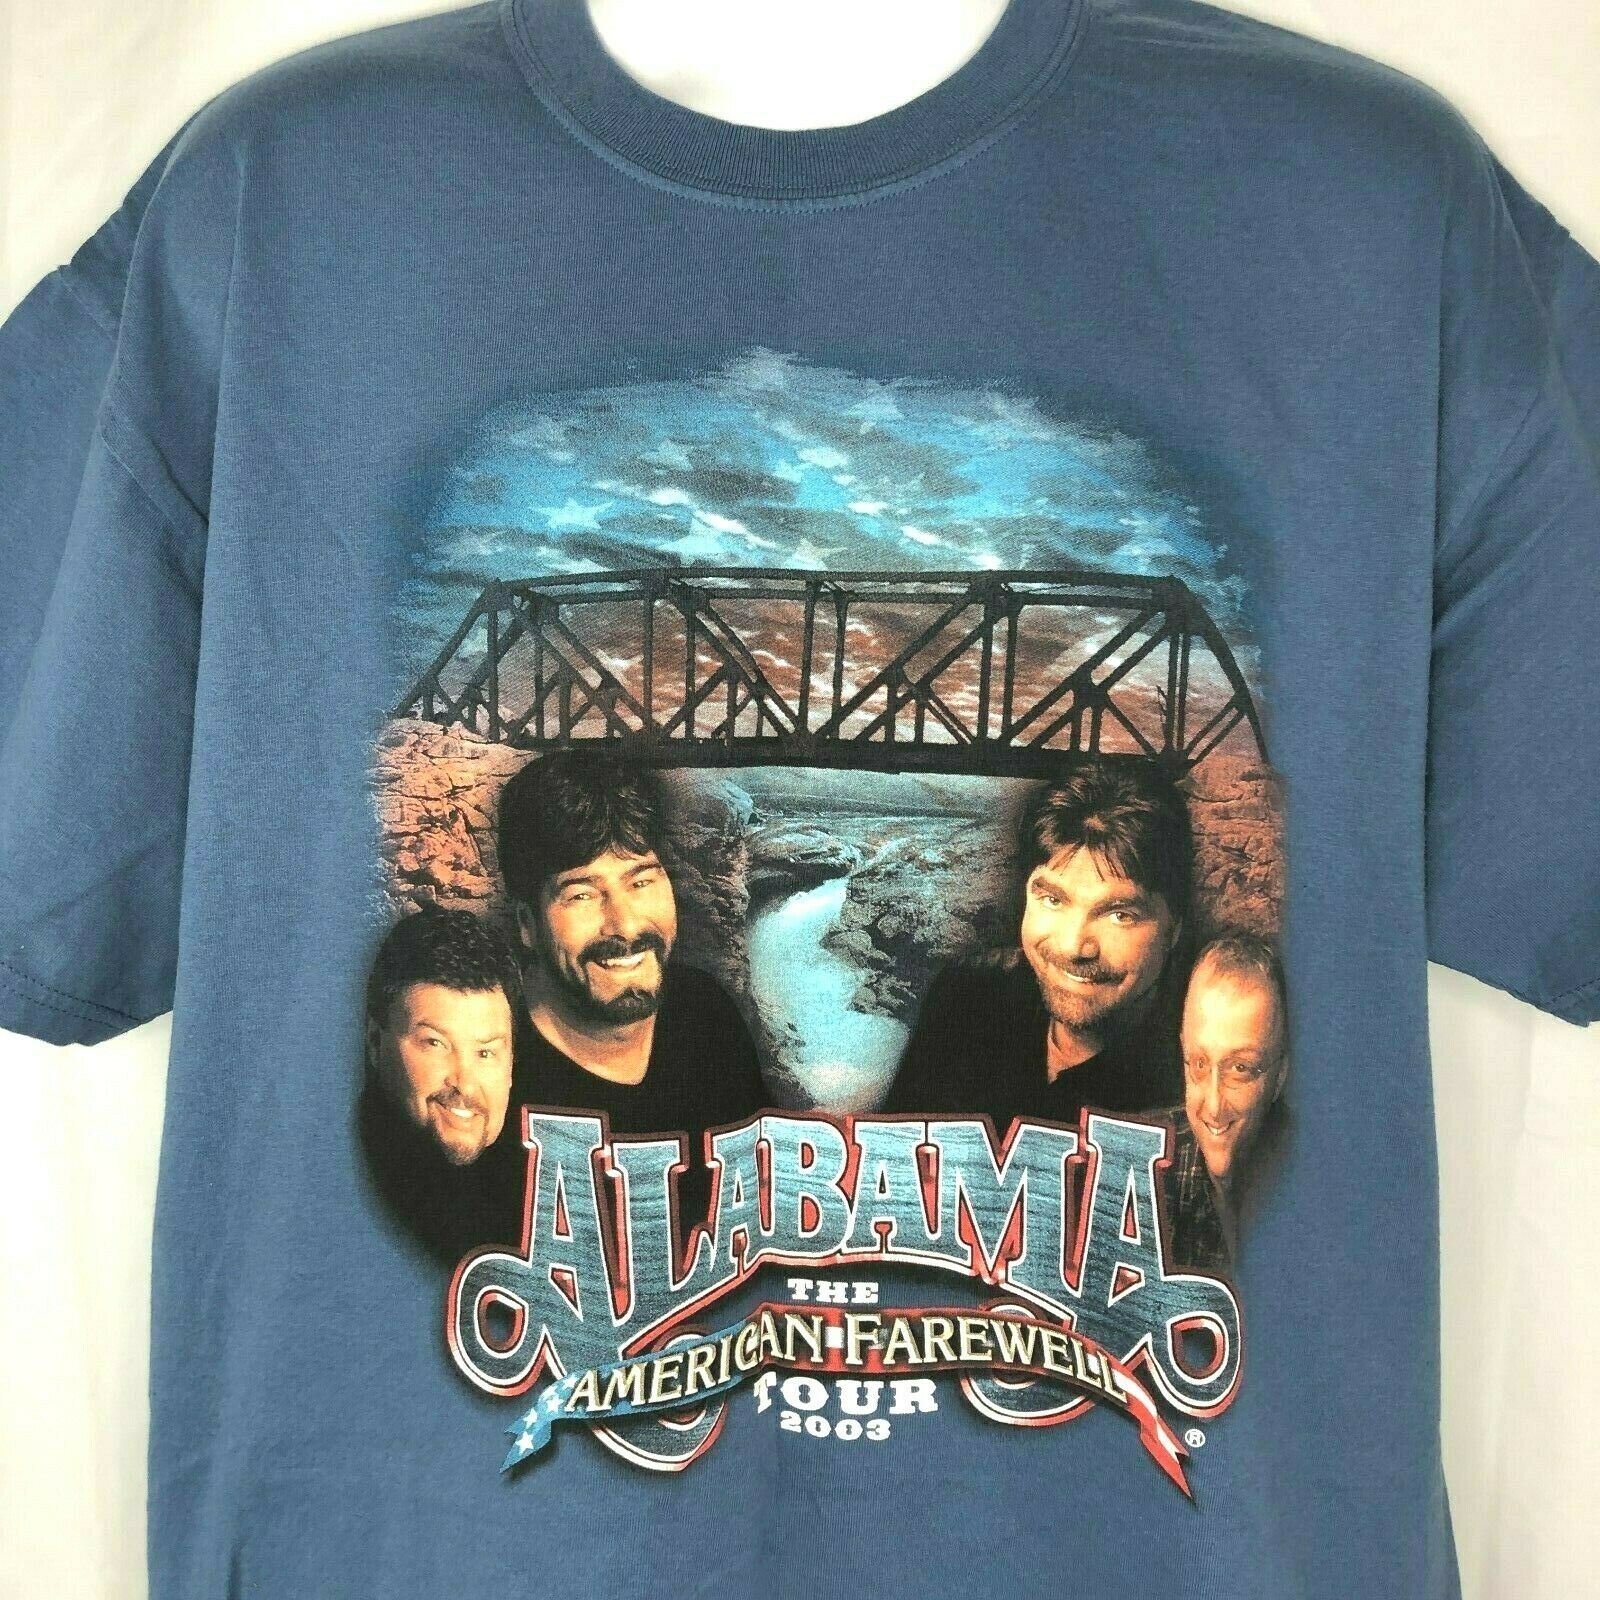 Primary image for Alabama American Farewell Tour 2003 T-Shirt XL Country Legends USA Cities Back